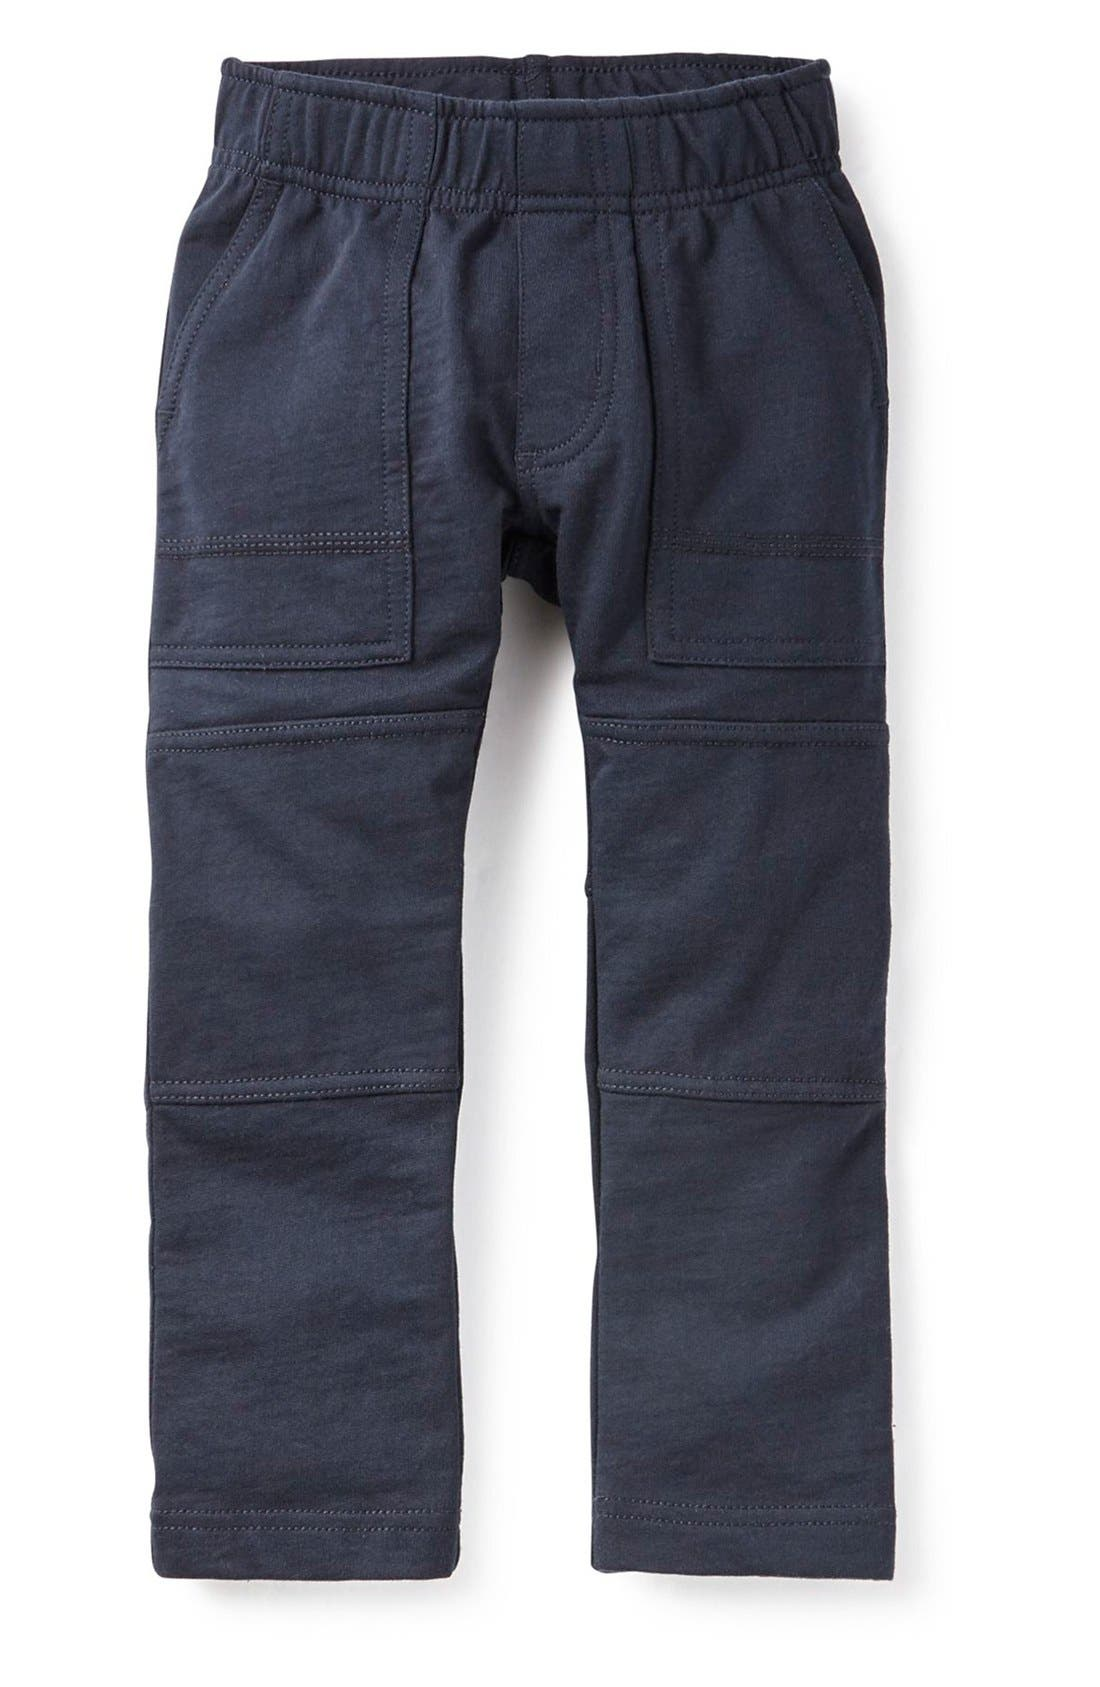 Toddler Boys Tea Collection French Terry Pants Size 3T  Blue